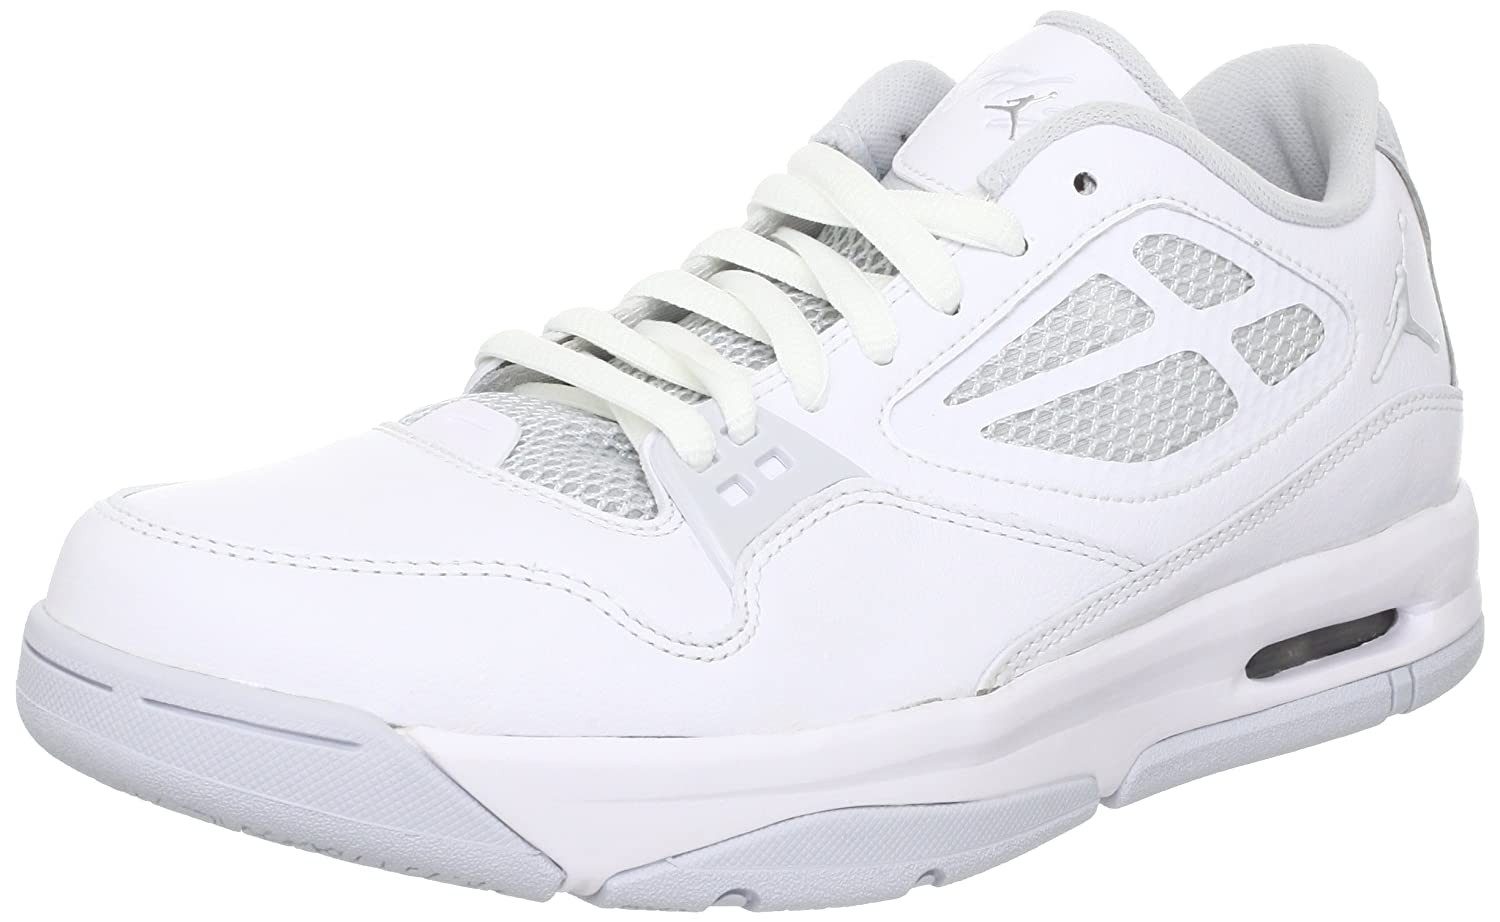 e03cd768243 Nike Men's Jordan Flight 23 RST Low Basketball Shoes 10 (White/Pure  Platinum): Buy Online at Low Prices in India - Amazon.in